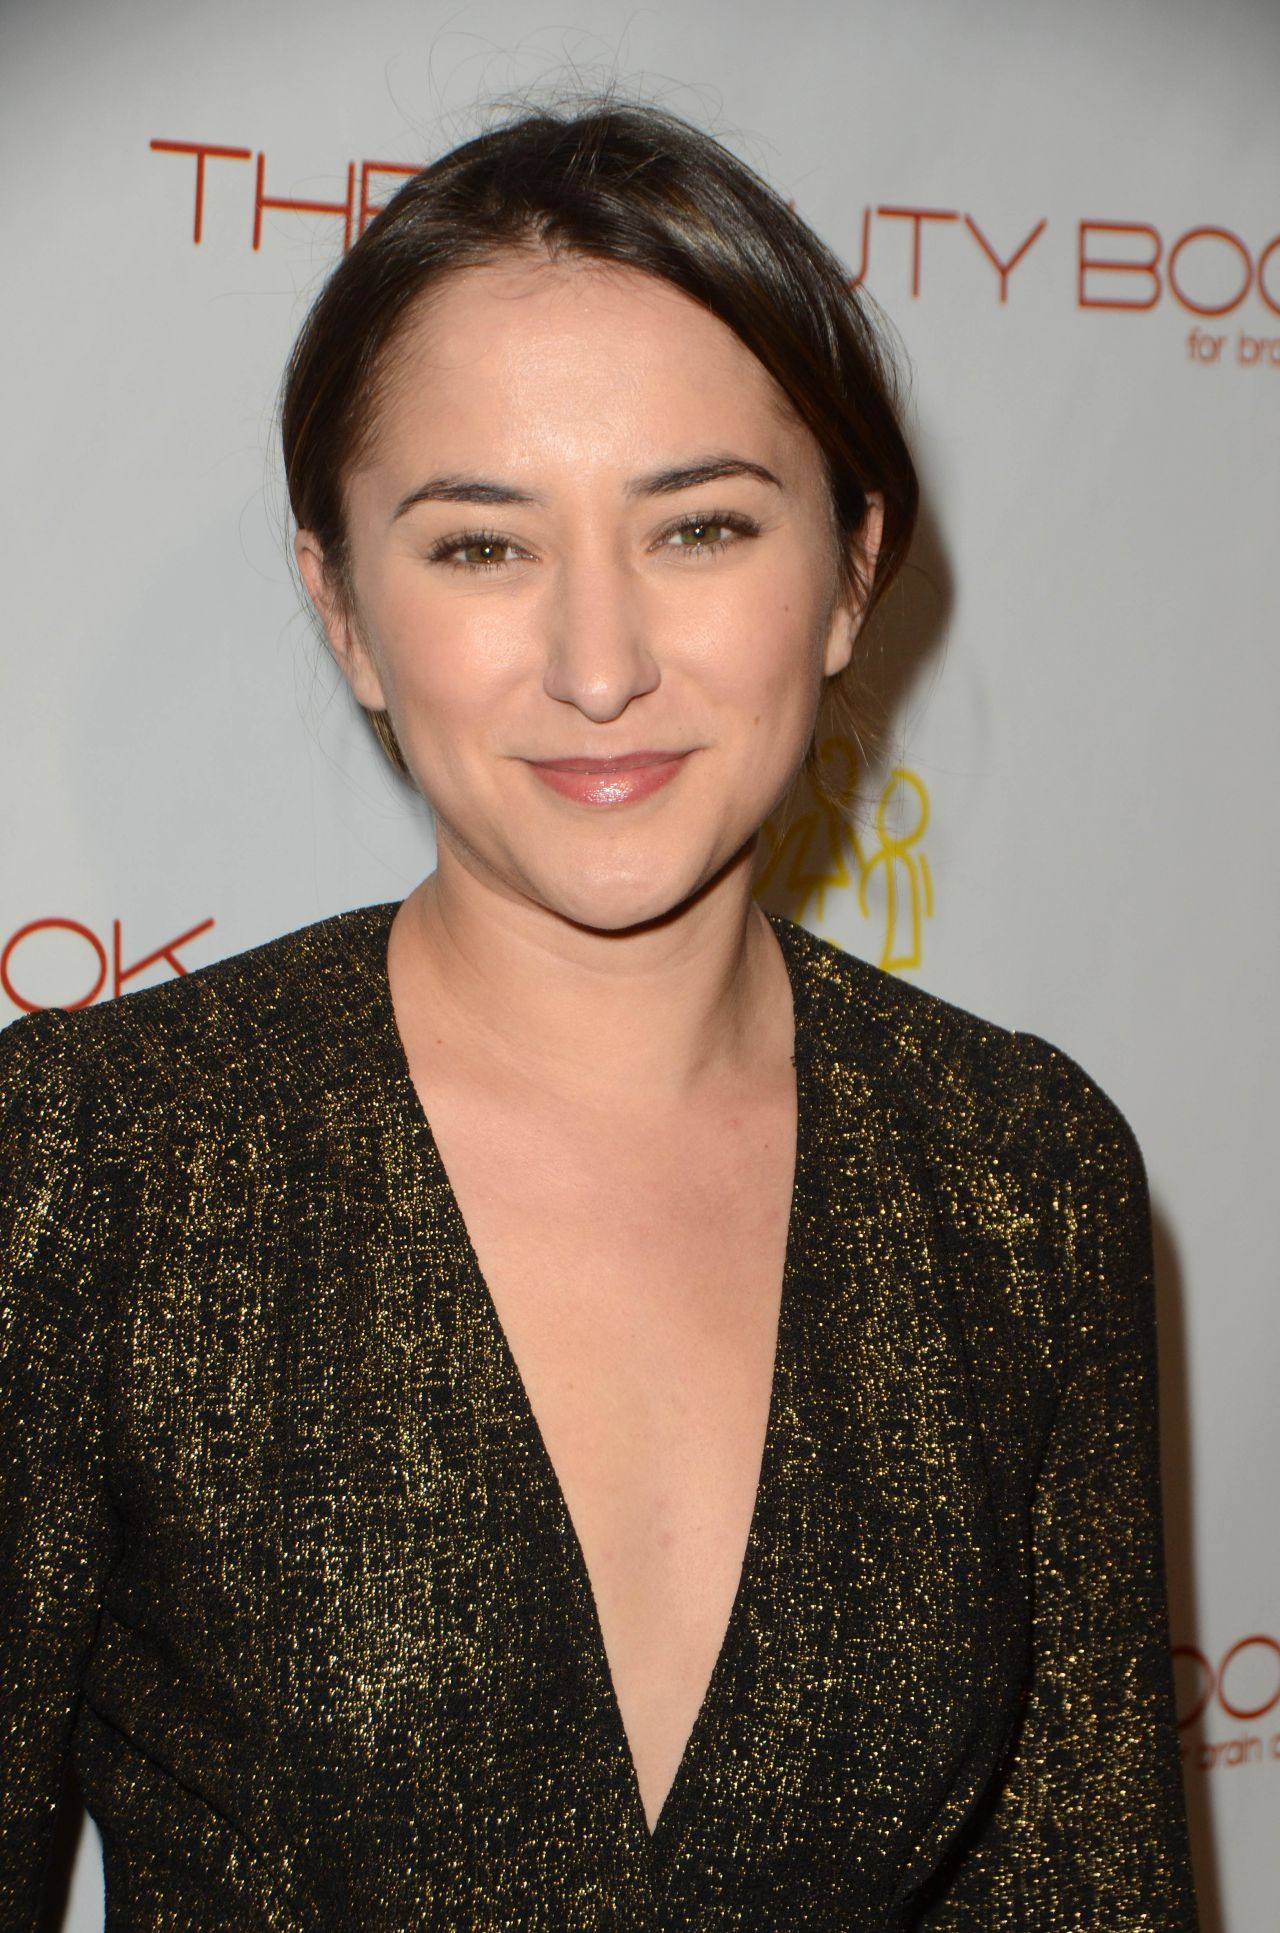 Zelda Williams – The Beauty Book For Brain Cancer Edition Two Launch Party in Los Angeles - zelda-williams-the-beauty-book-for-brain-cancer-edition-two-launch-party-in-los-angeles-12-3-2015_1